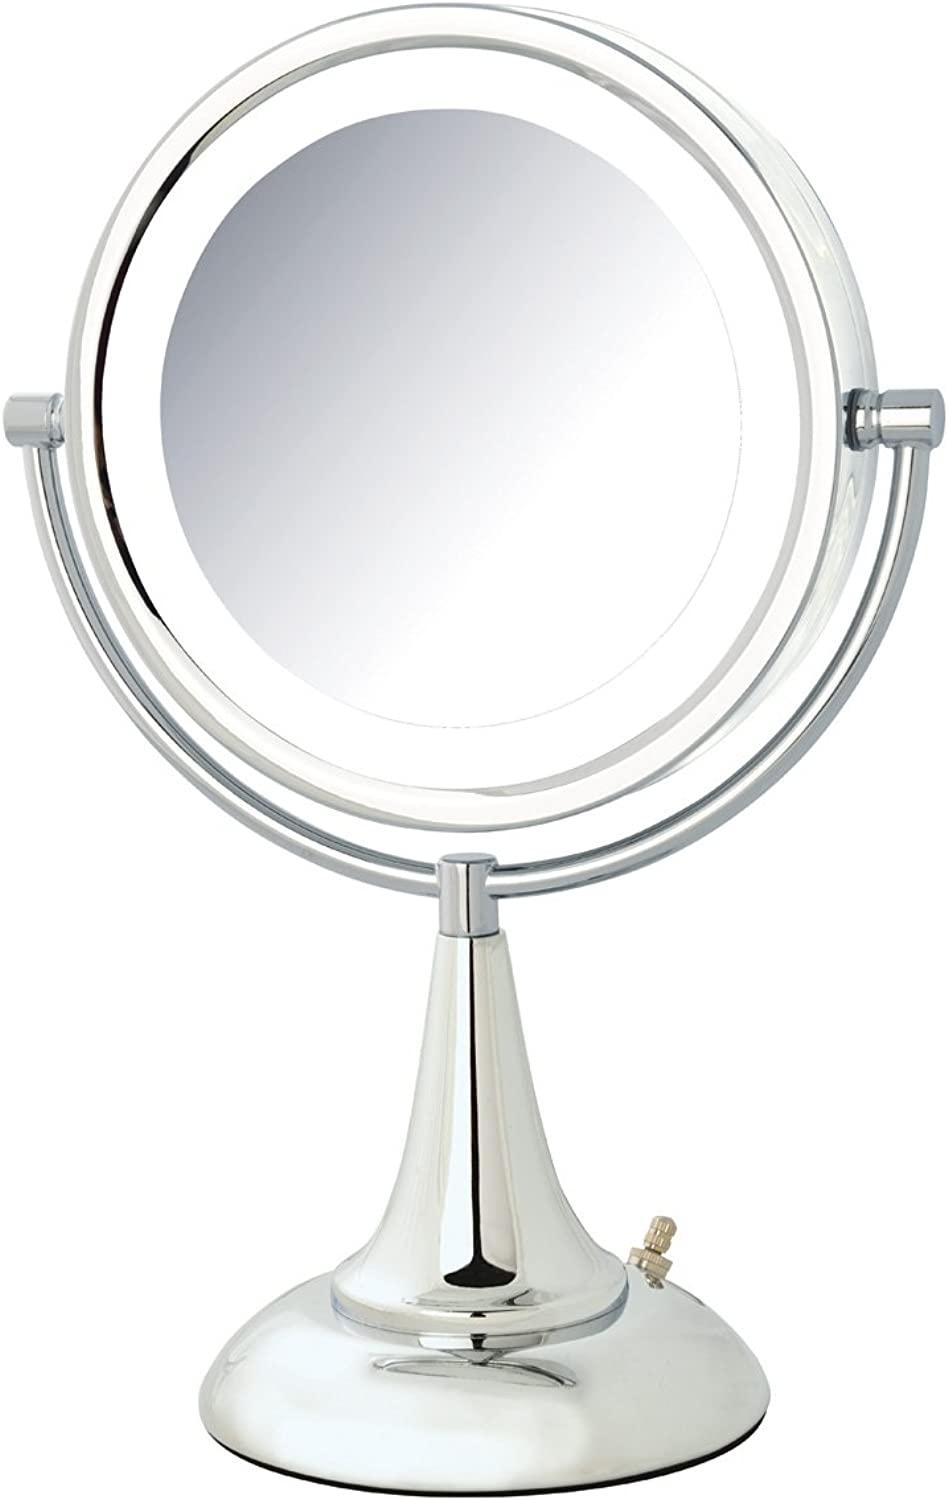 Jerdon HL8510CL 1x and 8x Magnification LED Lighted Table Top Mirror, Chrome